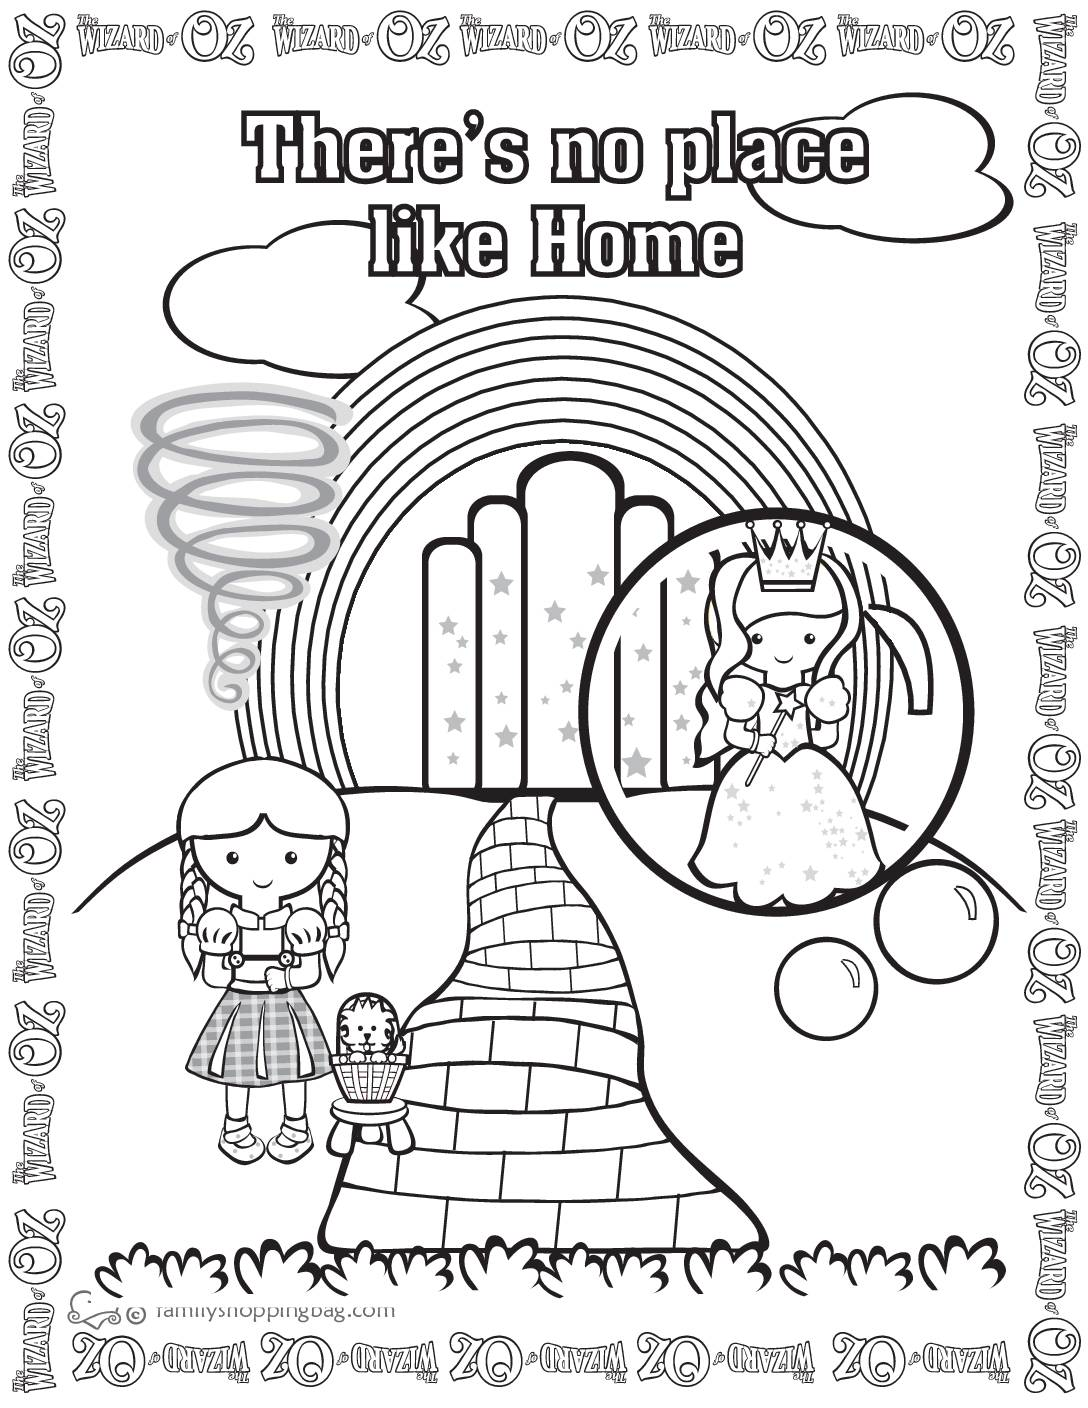 Coloring Page 3 Wizard of Oz